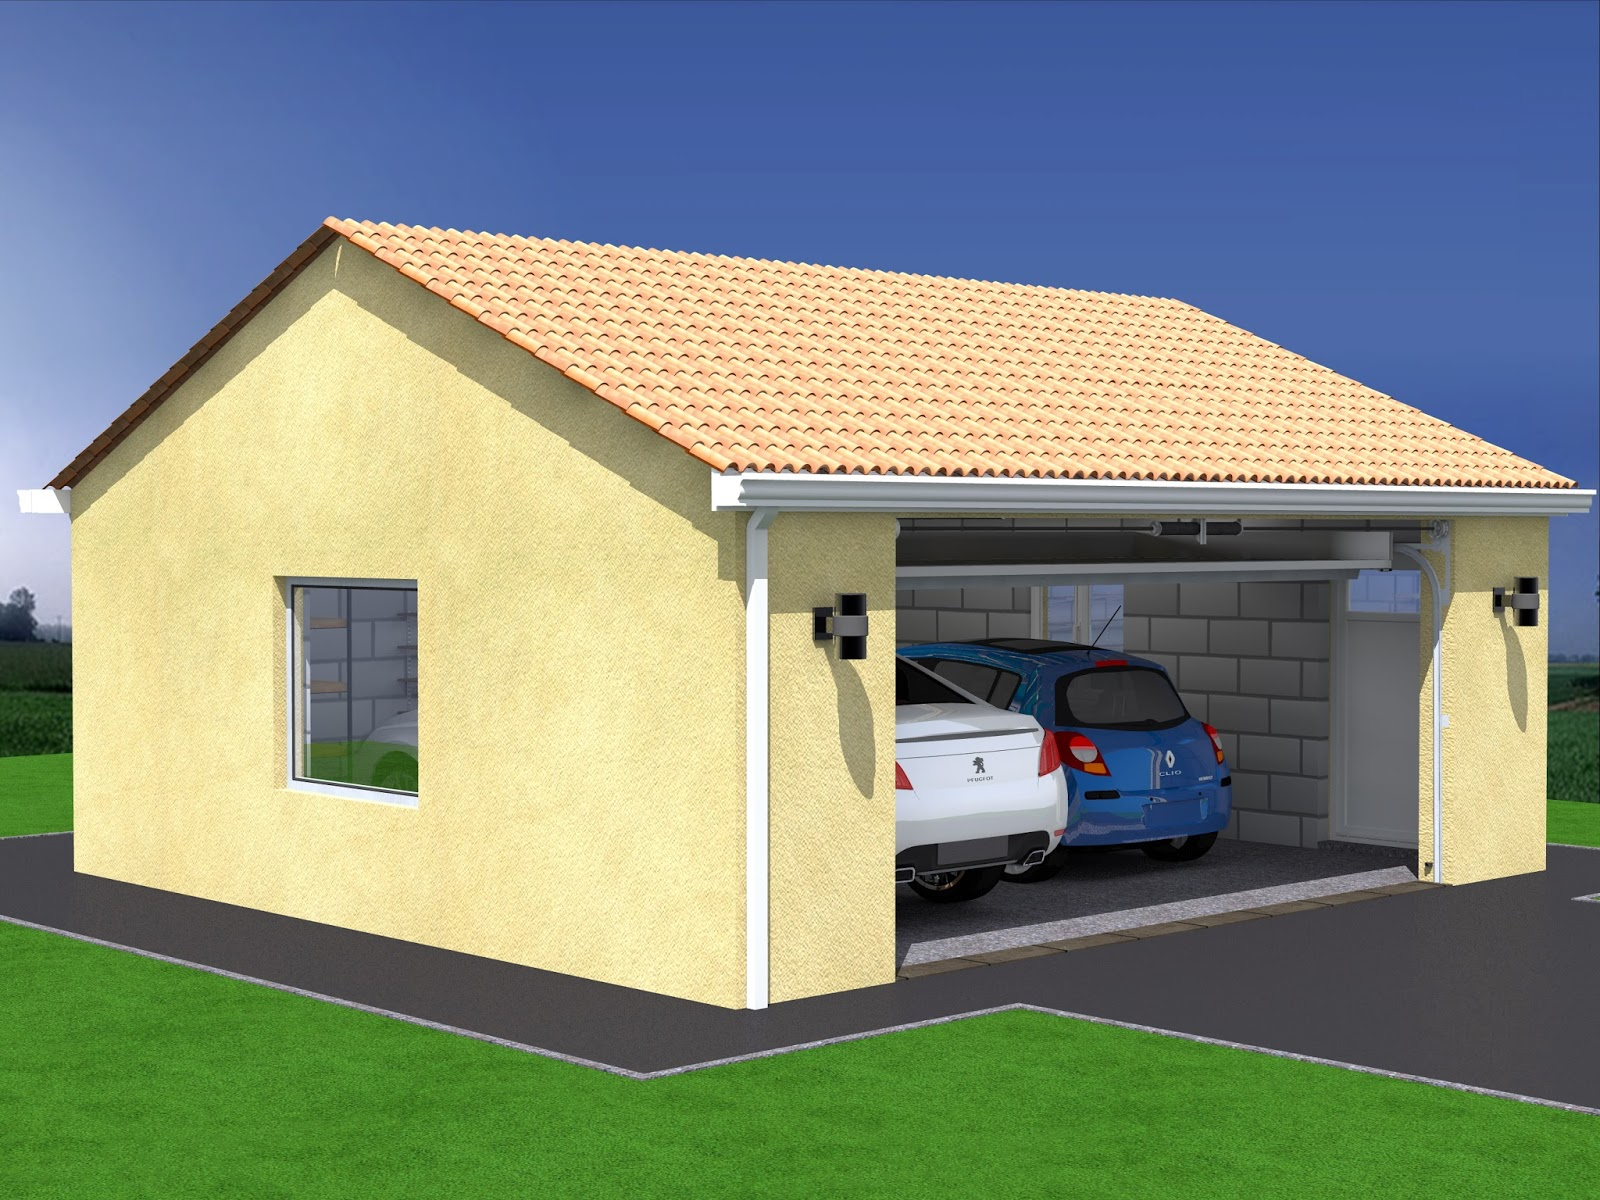 cout de construction d un garage double l 39 impression 3d